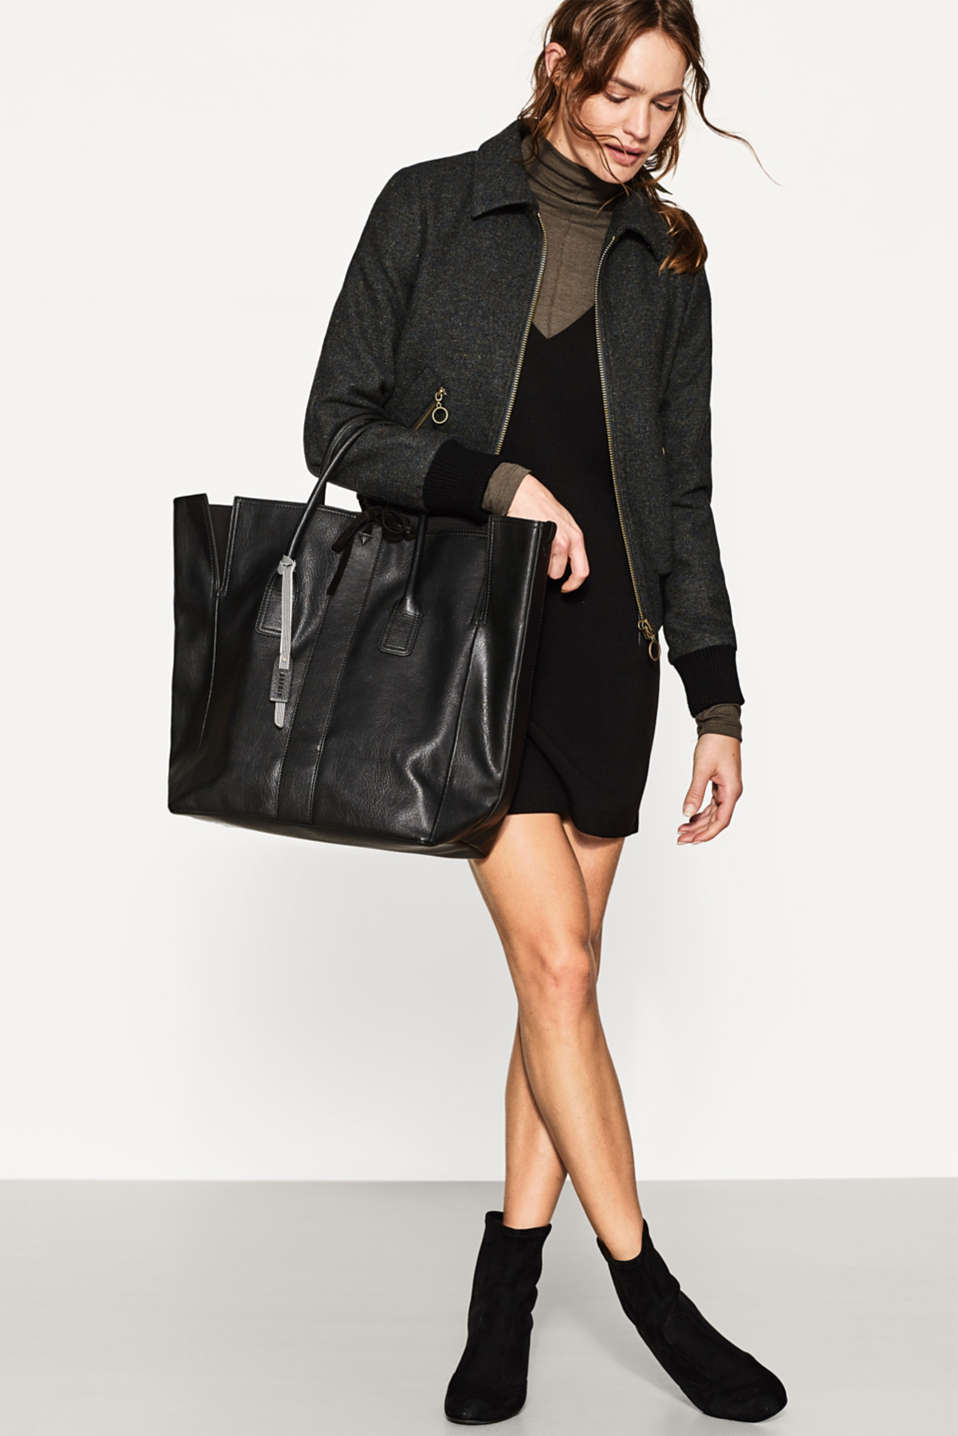 XL shopper in smooth faux leather